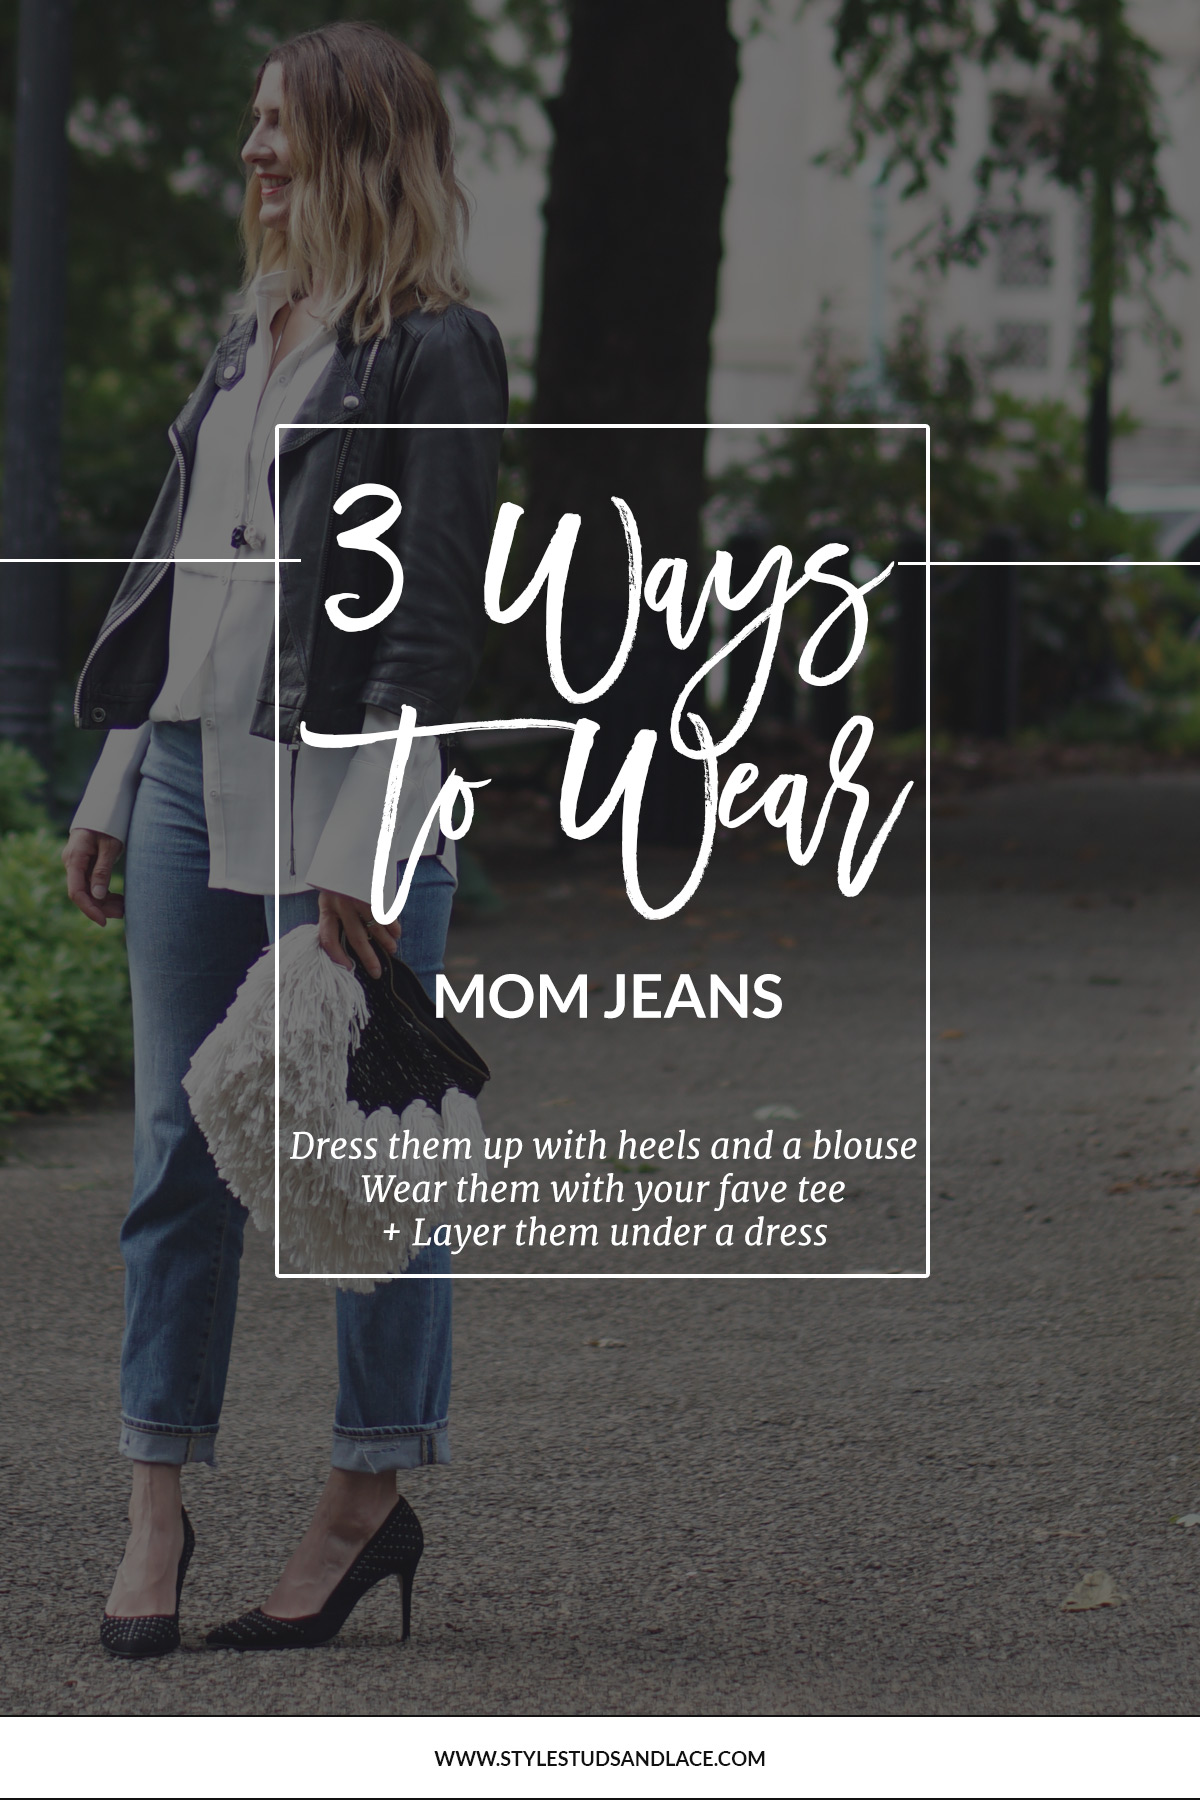 How to wear Mum jeans | Mom jeans are so versatile they can be dressed up, layered under dresses and worn casually